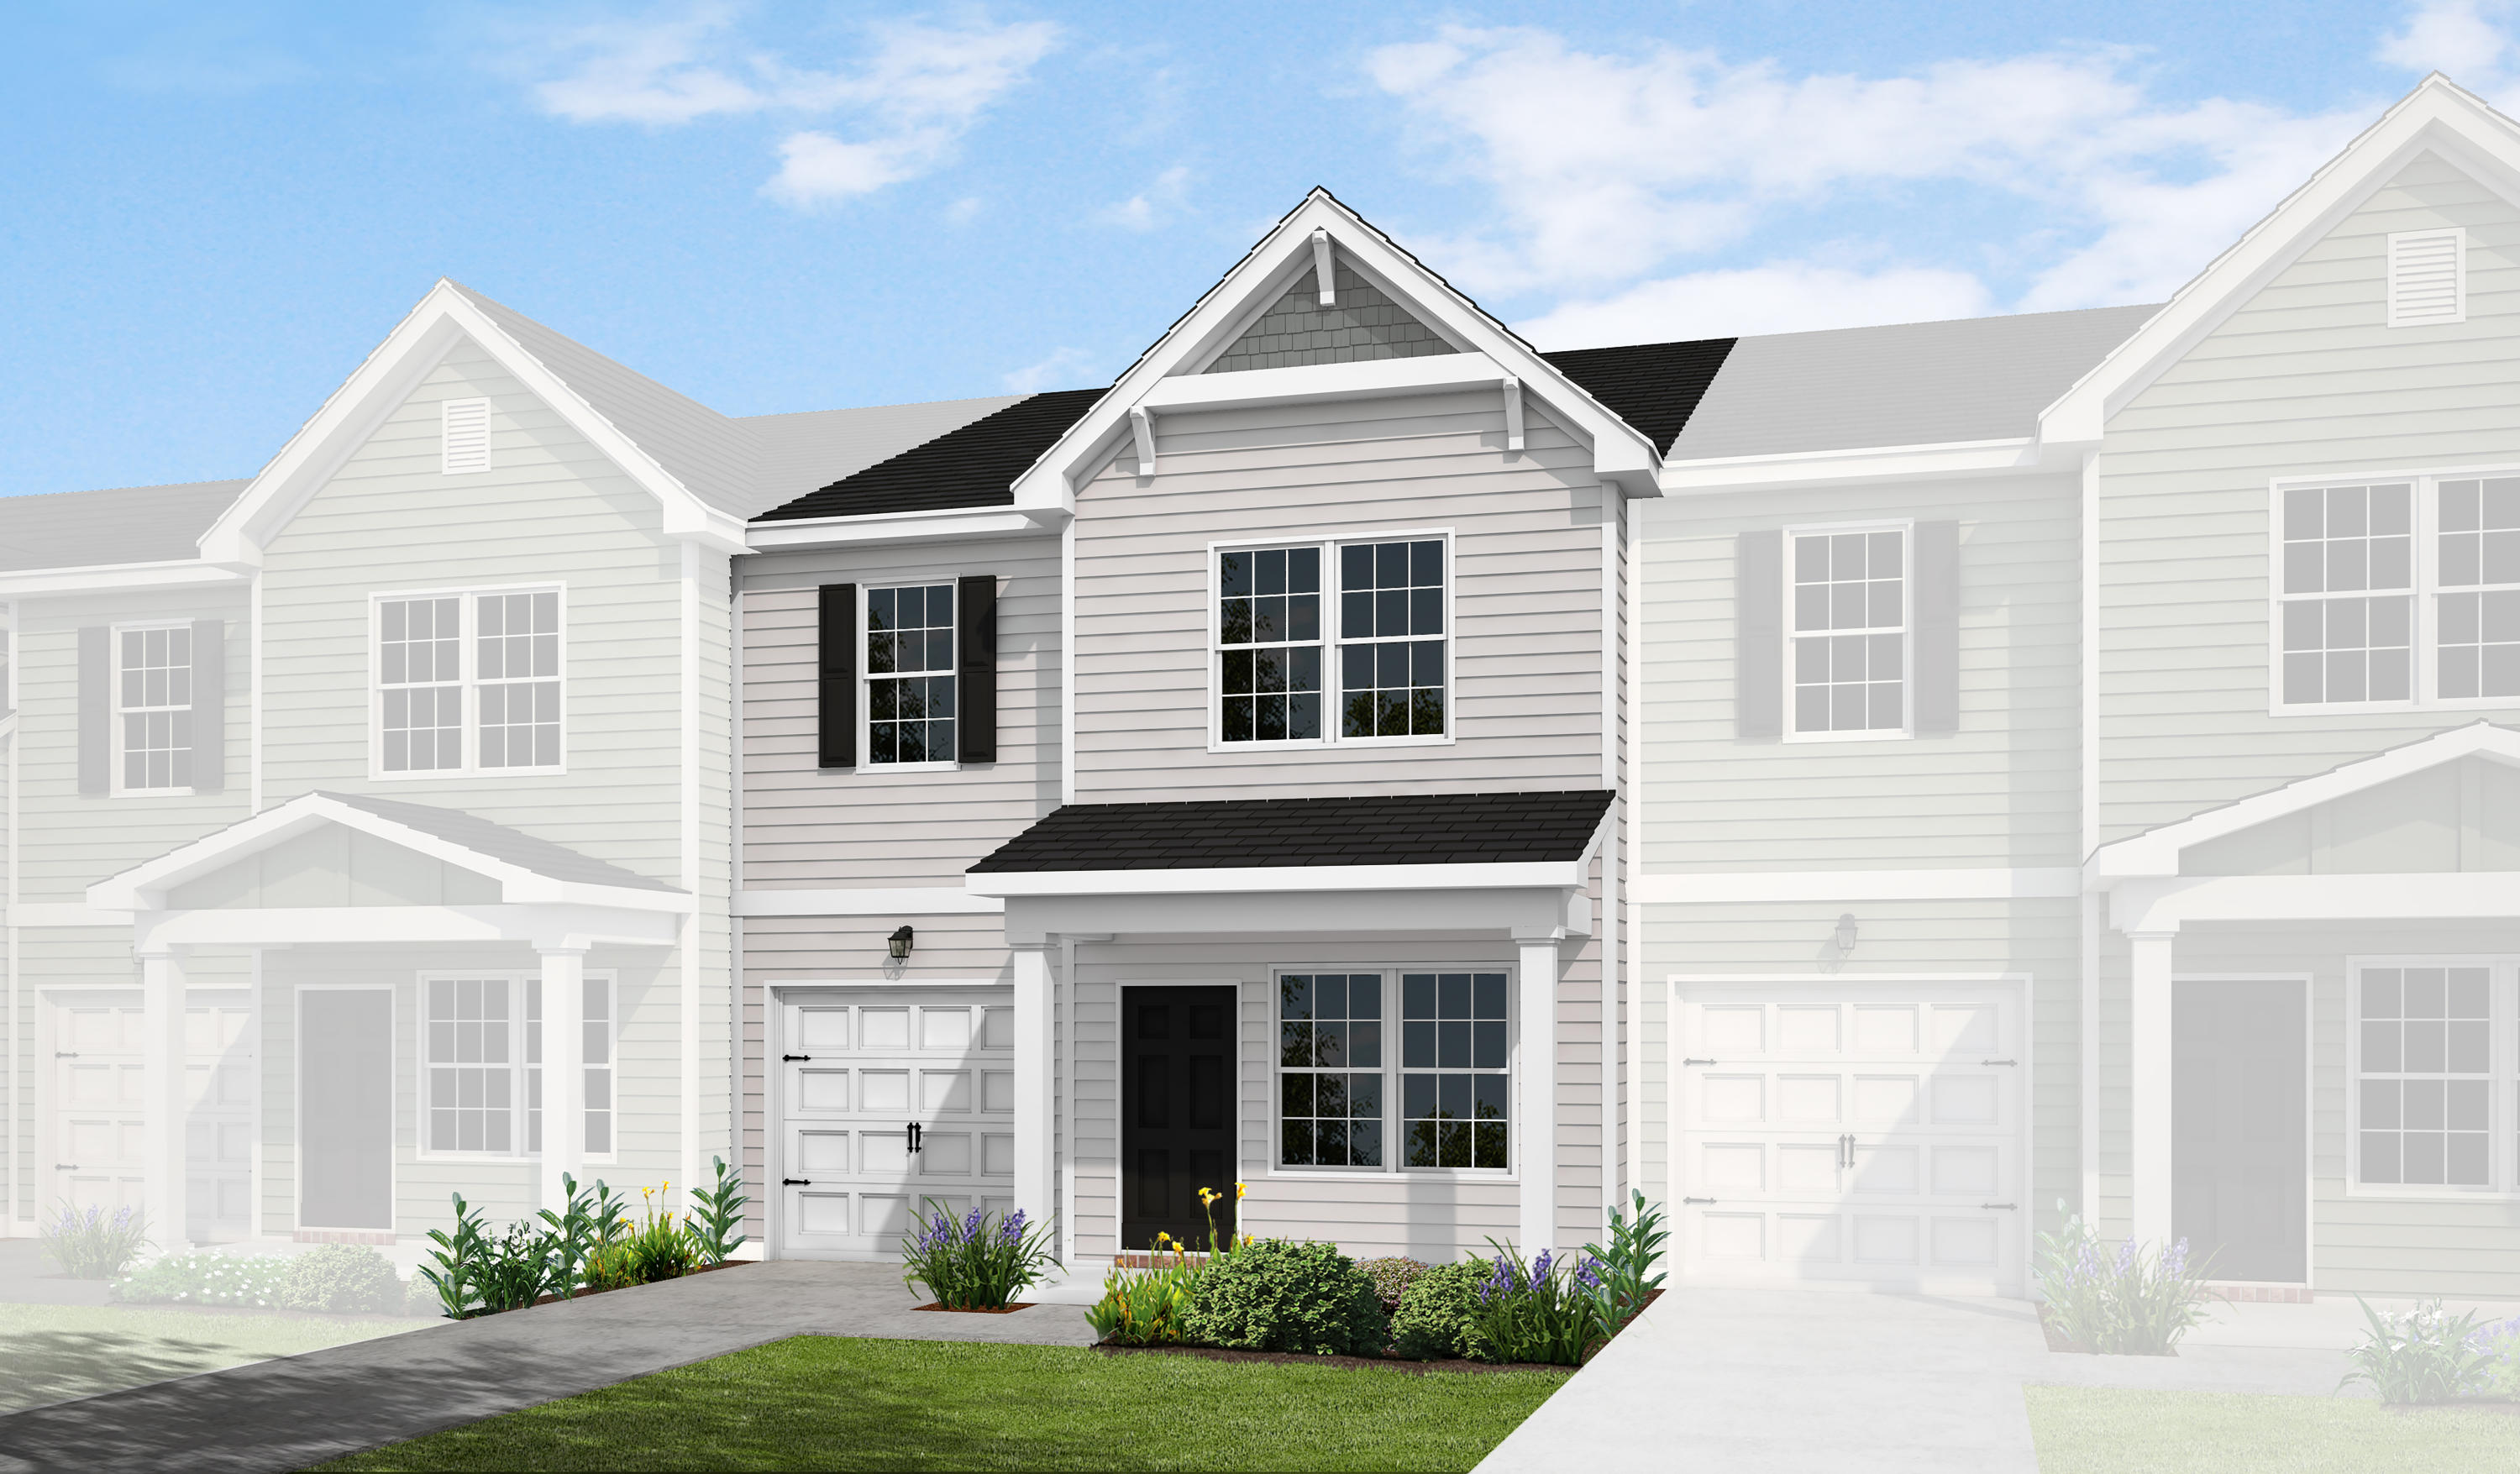 Cokers Commons Homes For Sale - 102 Kirkland, Goose Creek, SC - 0